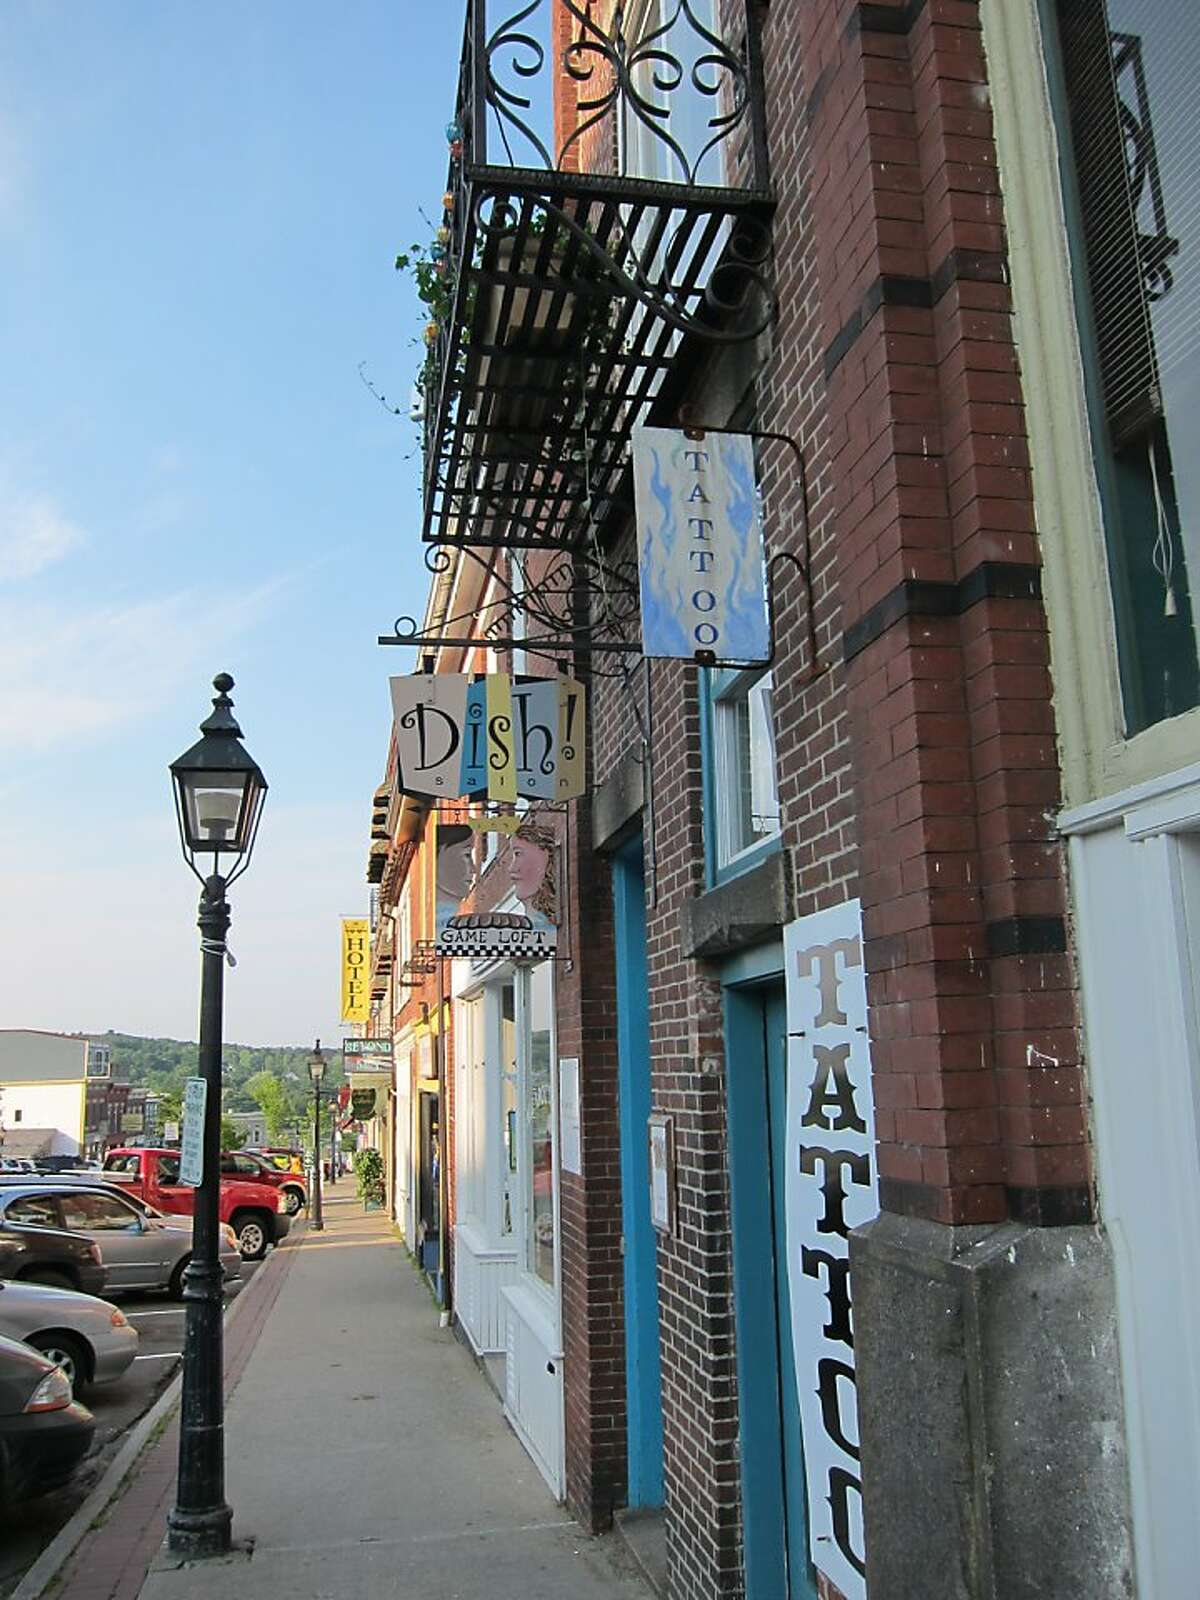 Belfast's lively downtown teems with galleries, boutiques and cafes in stately preserved buildings, as seen here on Main Street, which slopes down to the harbor. The emphasis is on local-made.